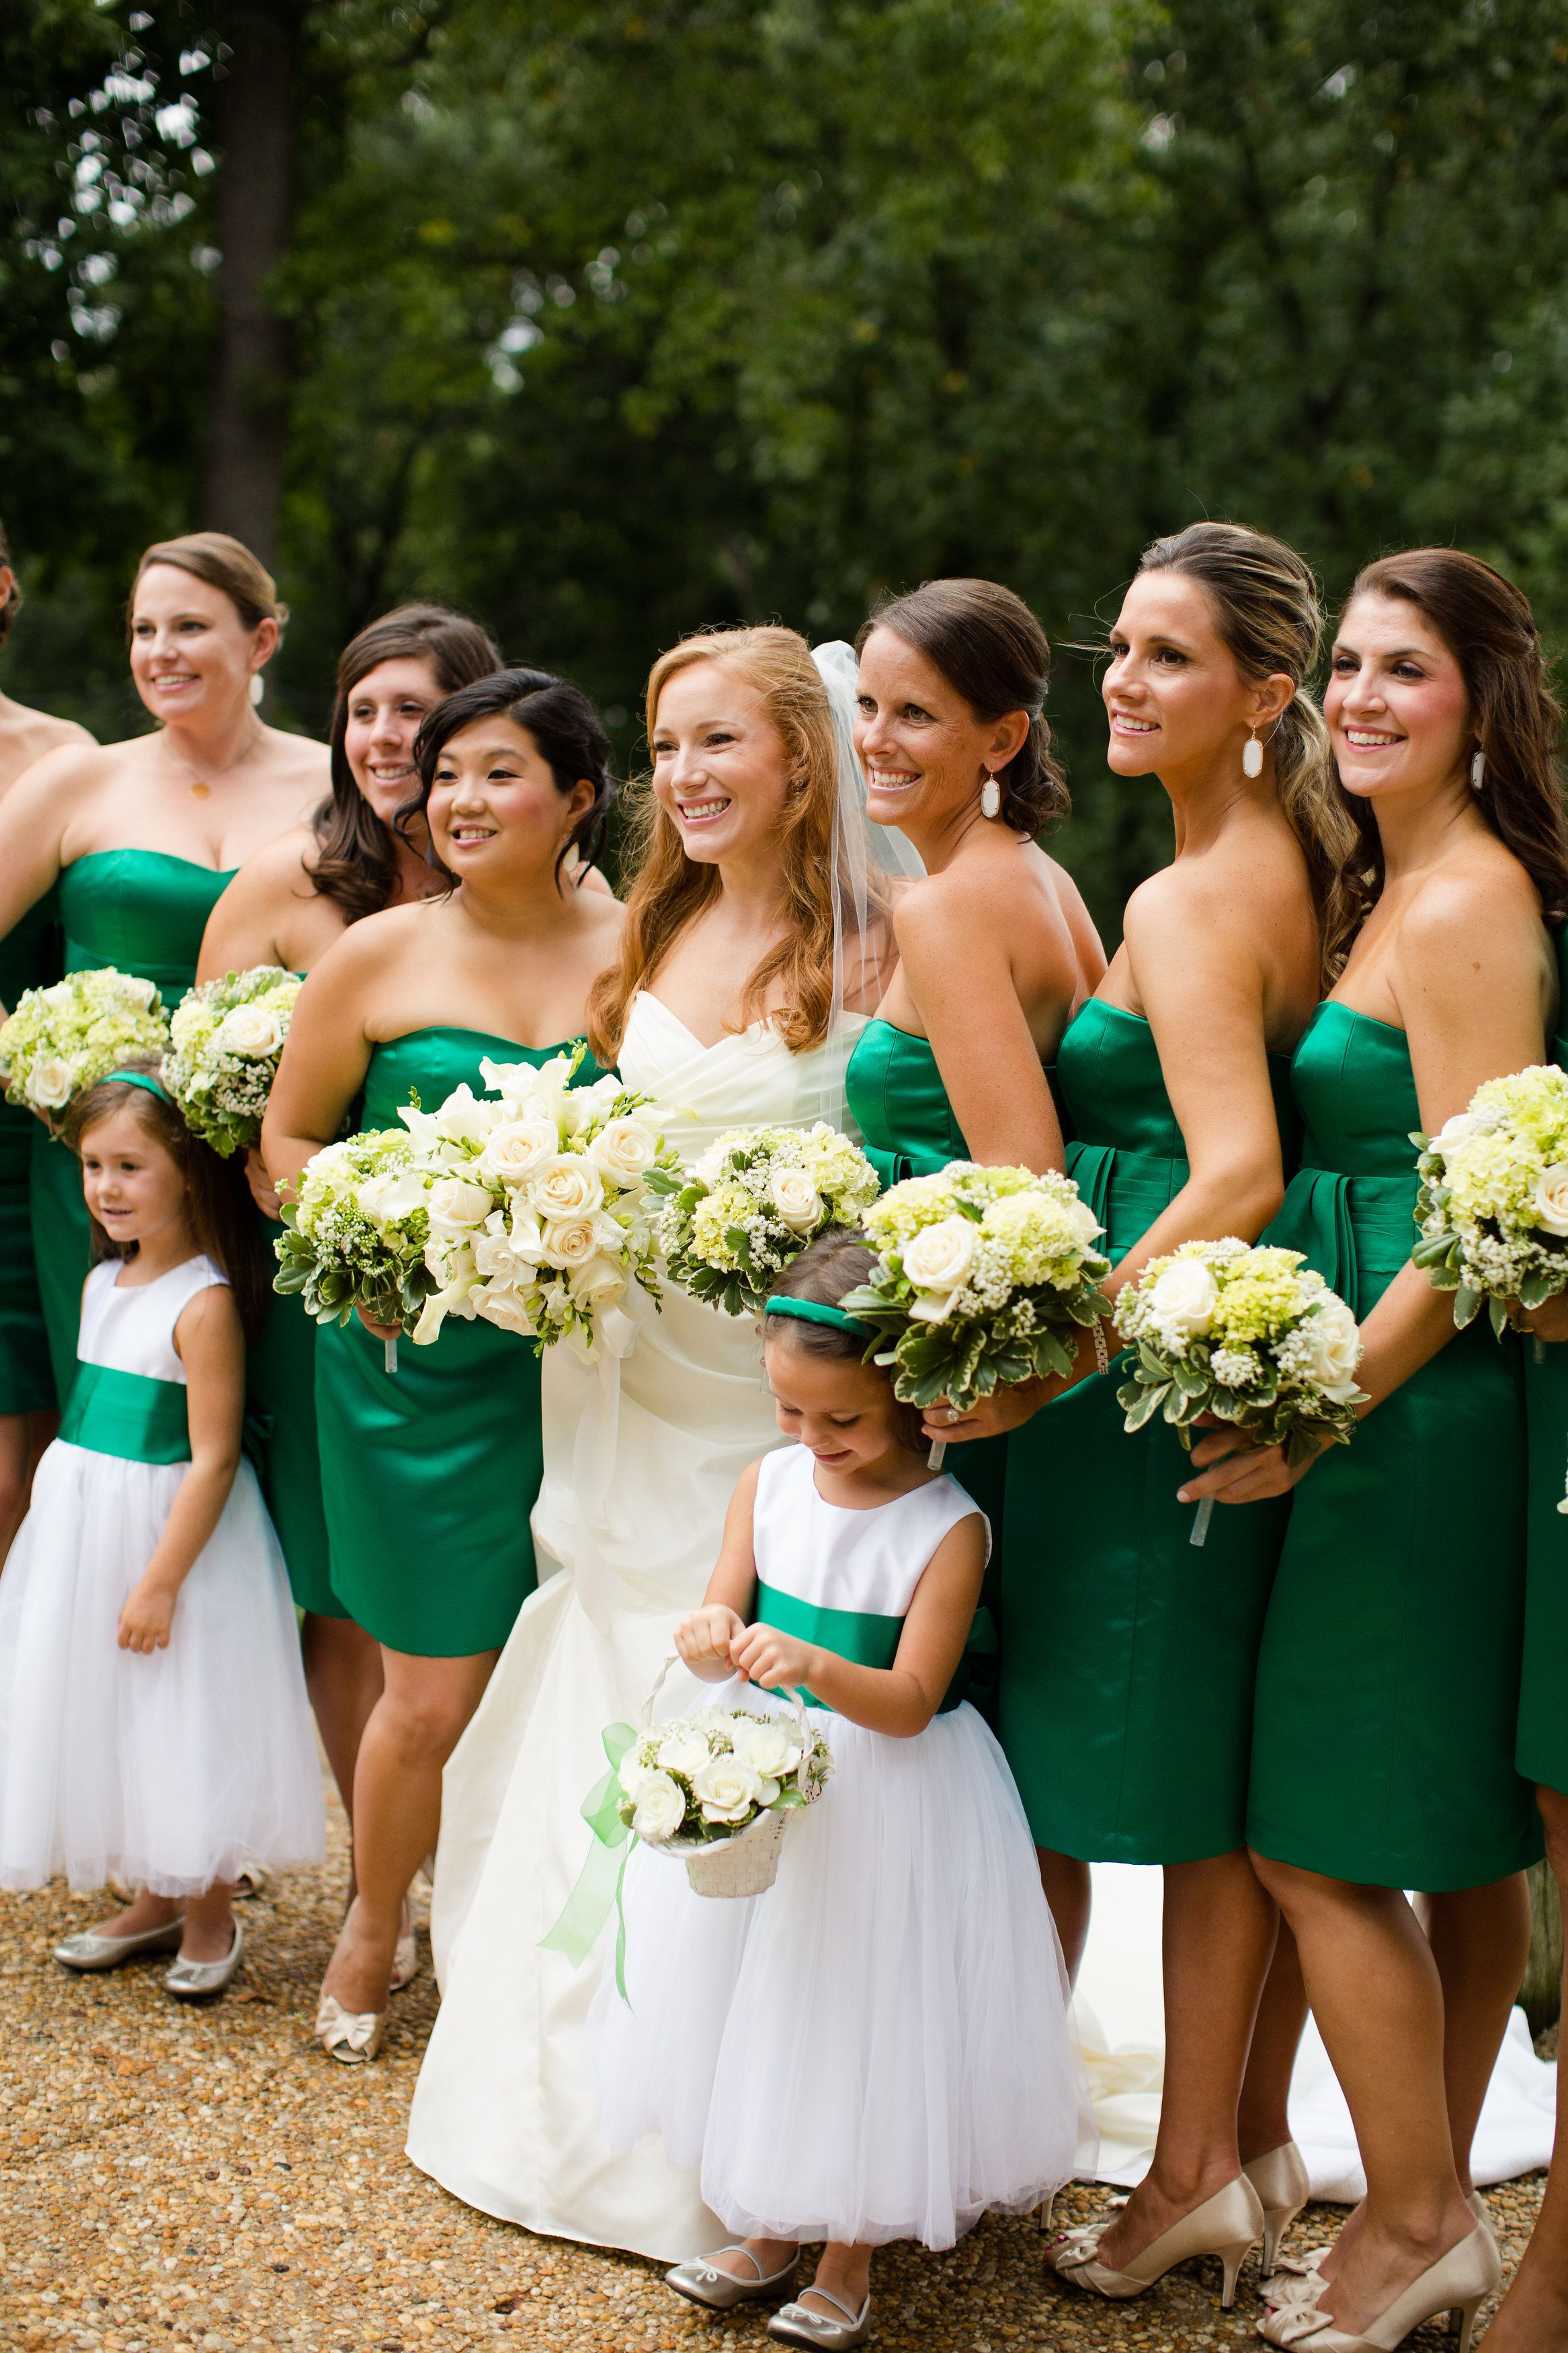 Emerald wedding dress  Bridal party in white and emerald  Real Weddings  Pinterest